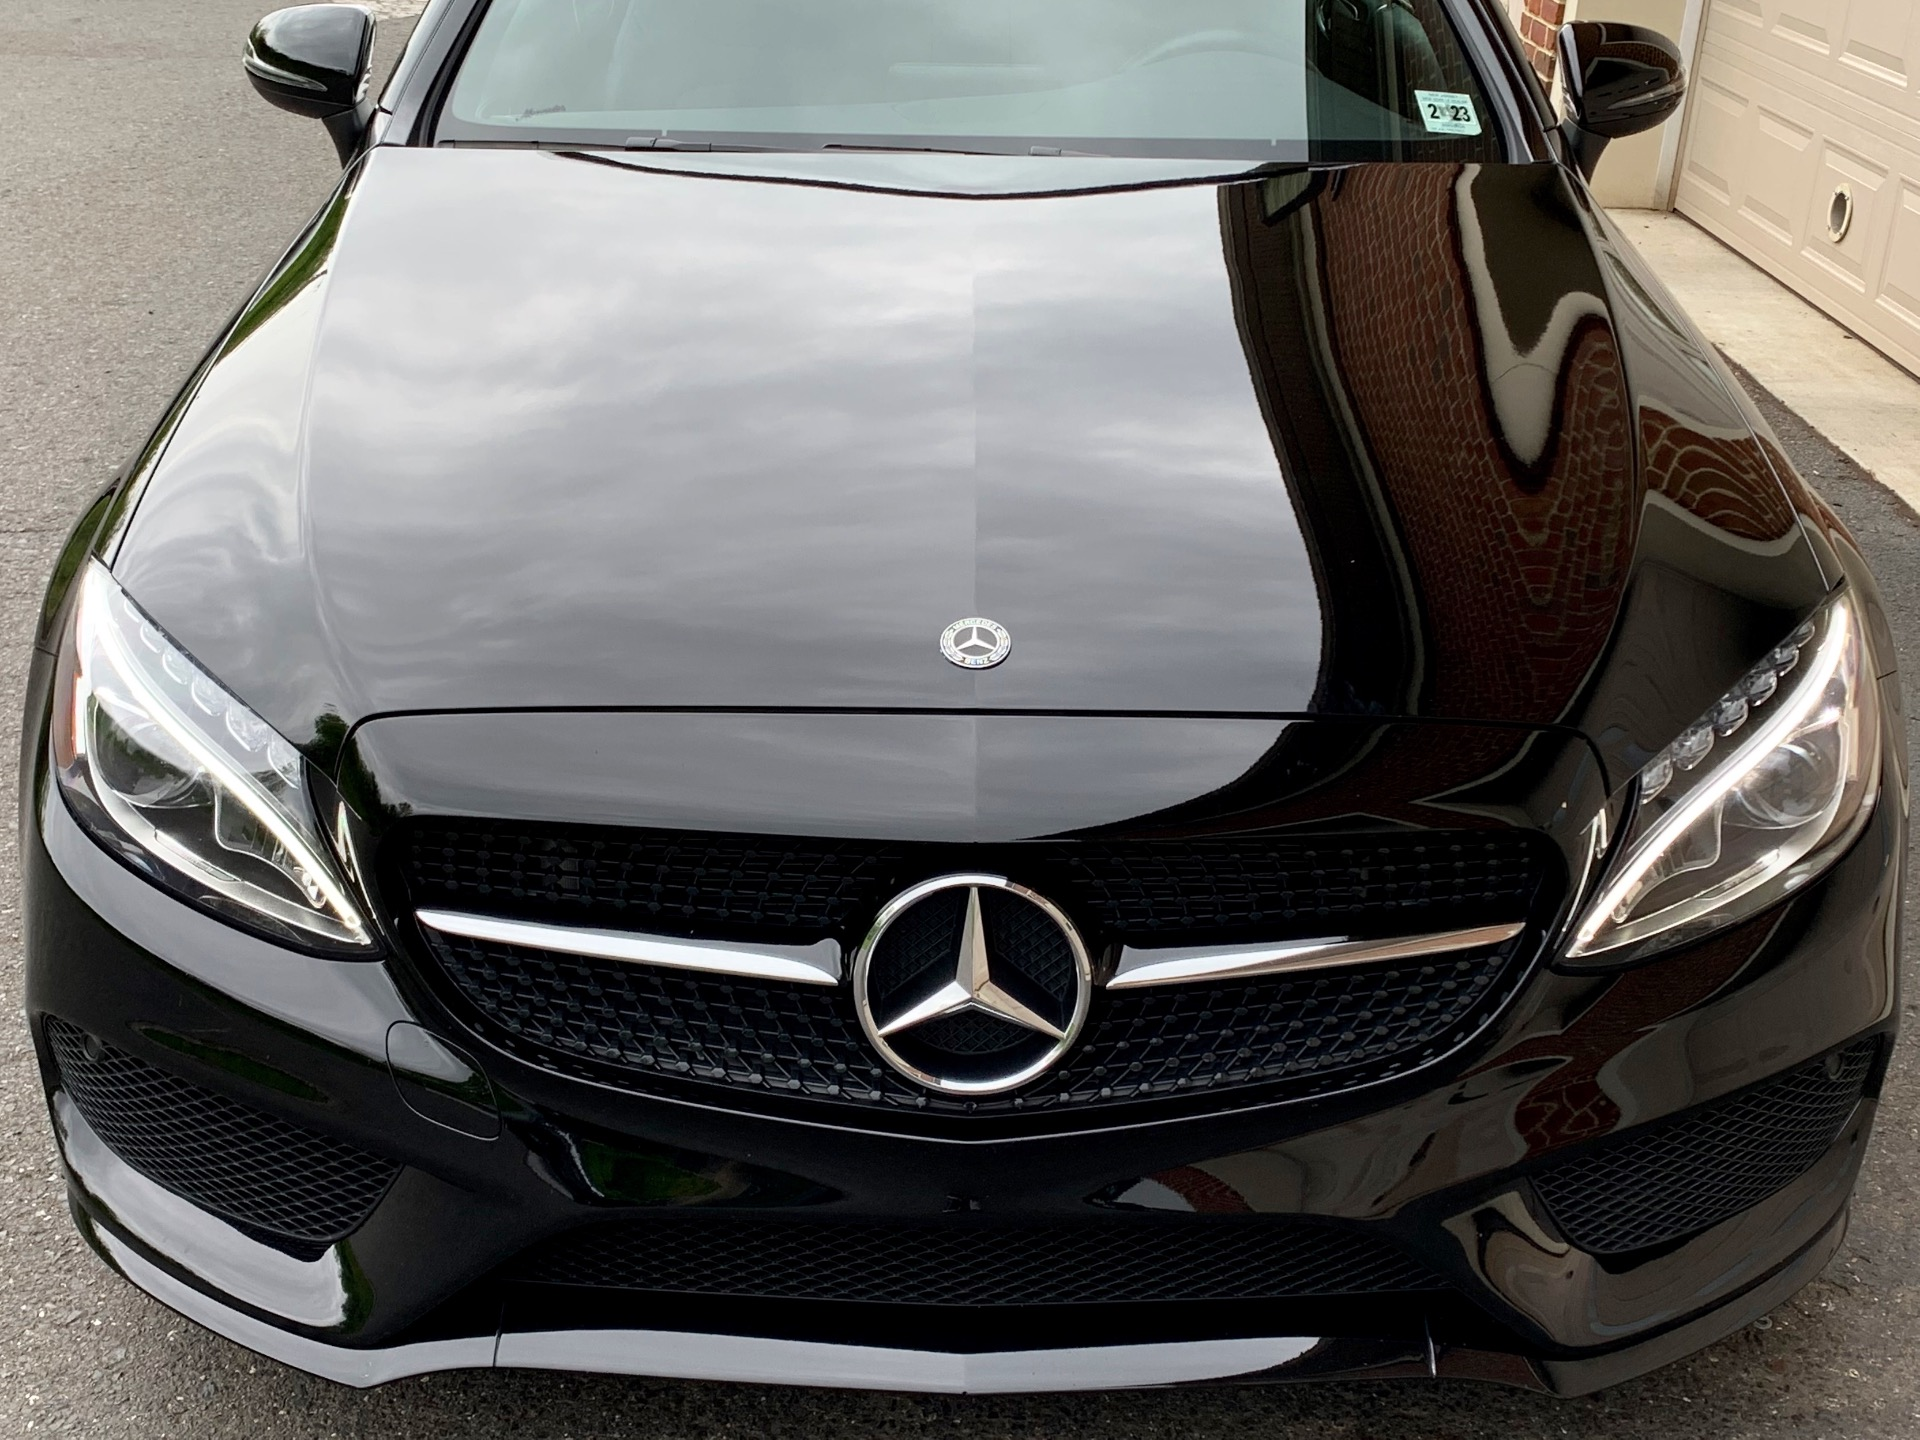 Used-2018-Mercedes-Benz-C-Class-C300-4-Matic-Convertible